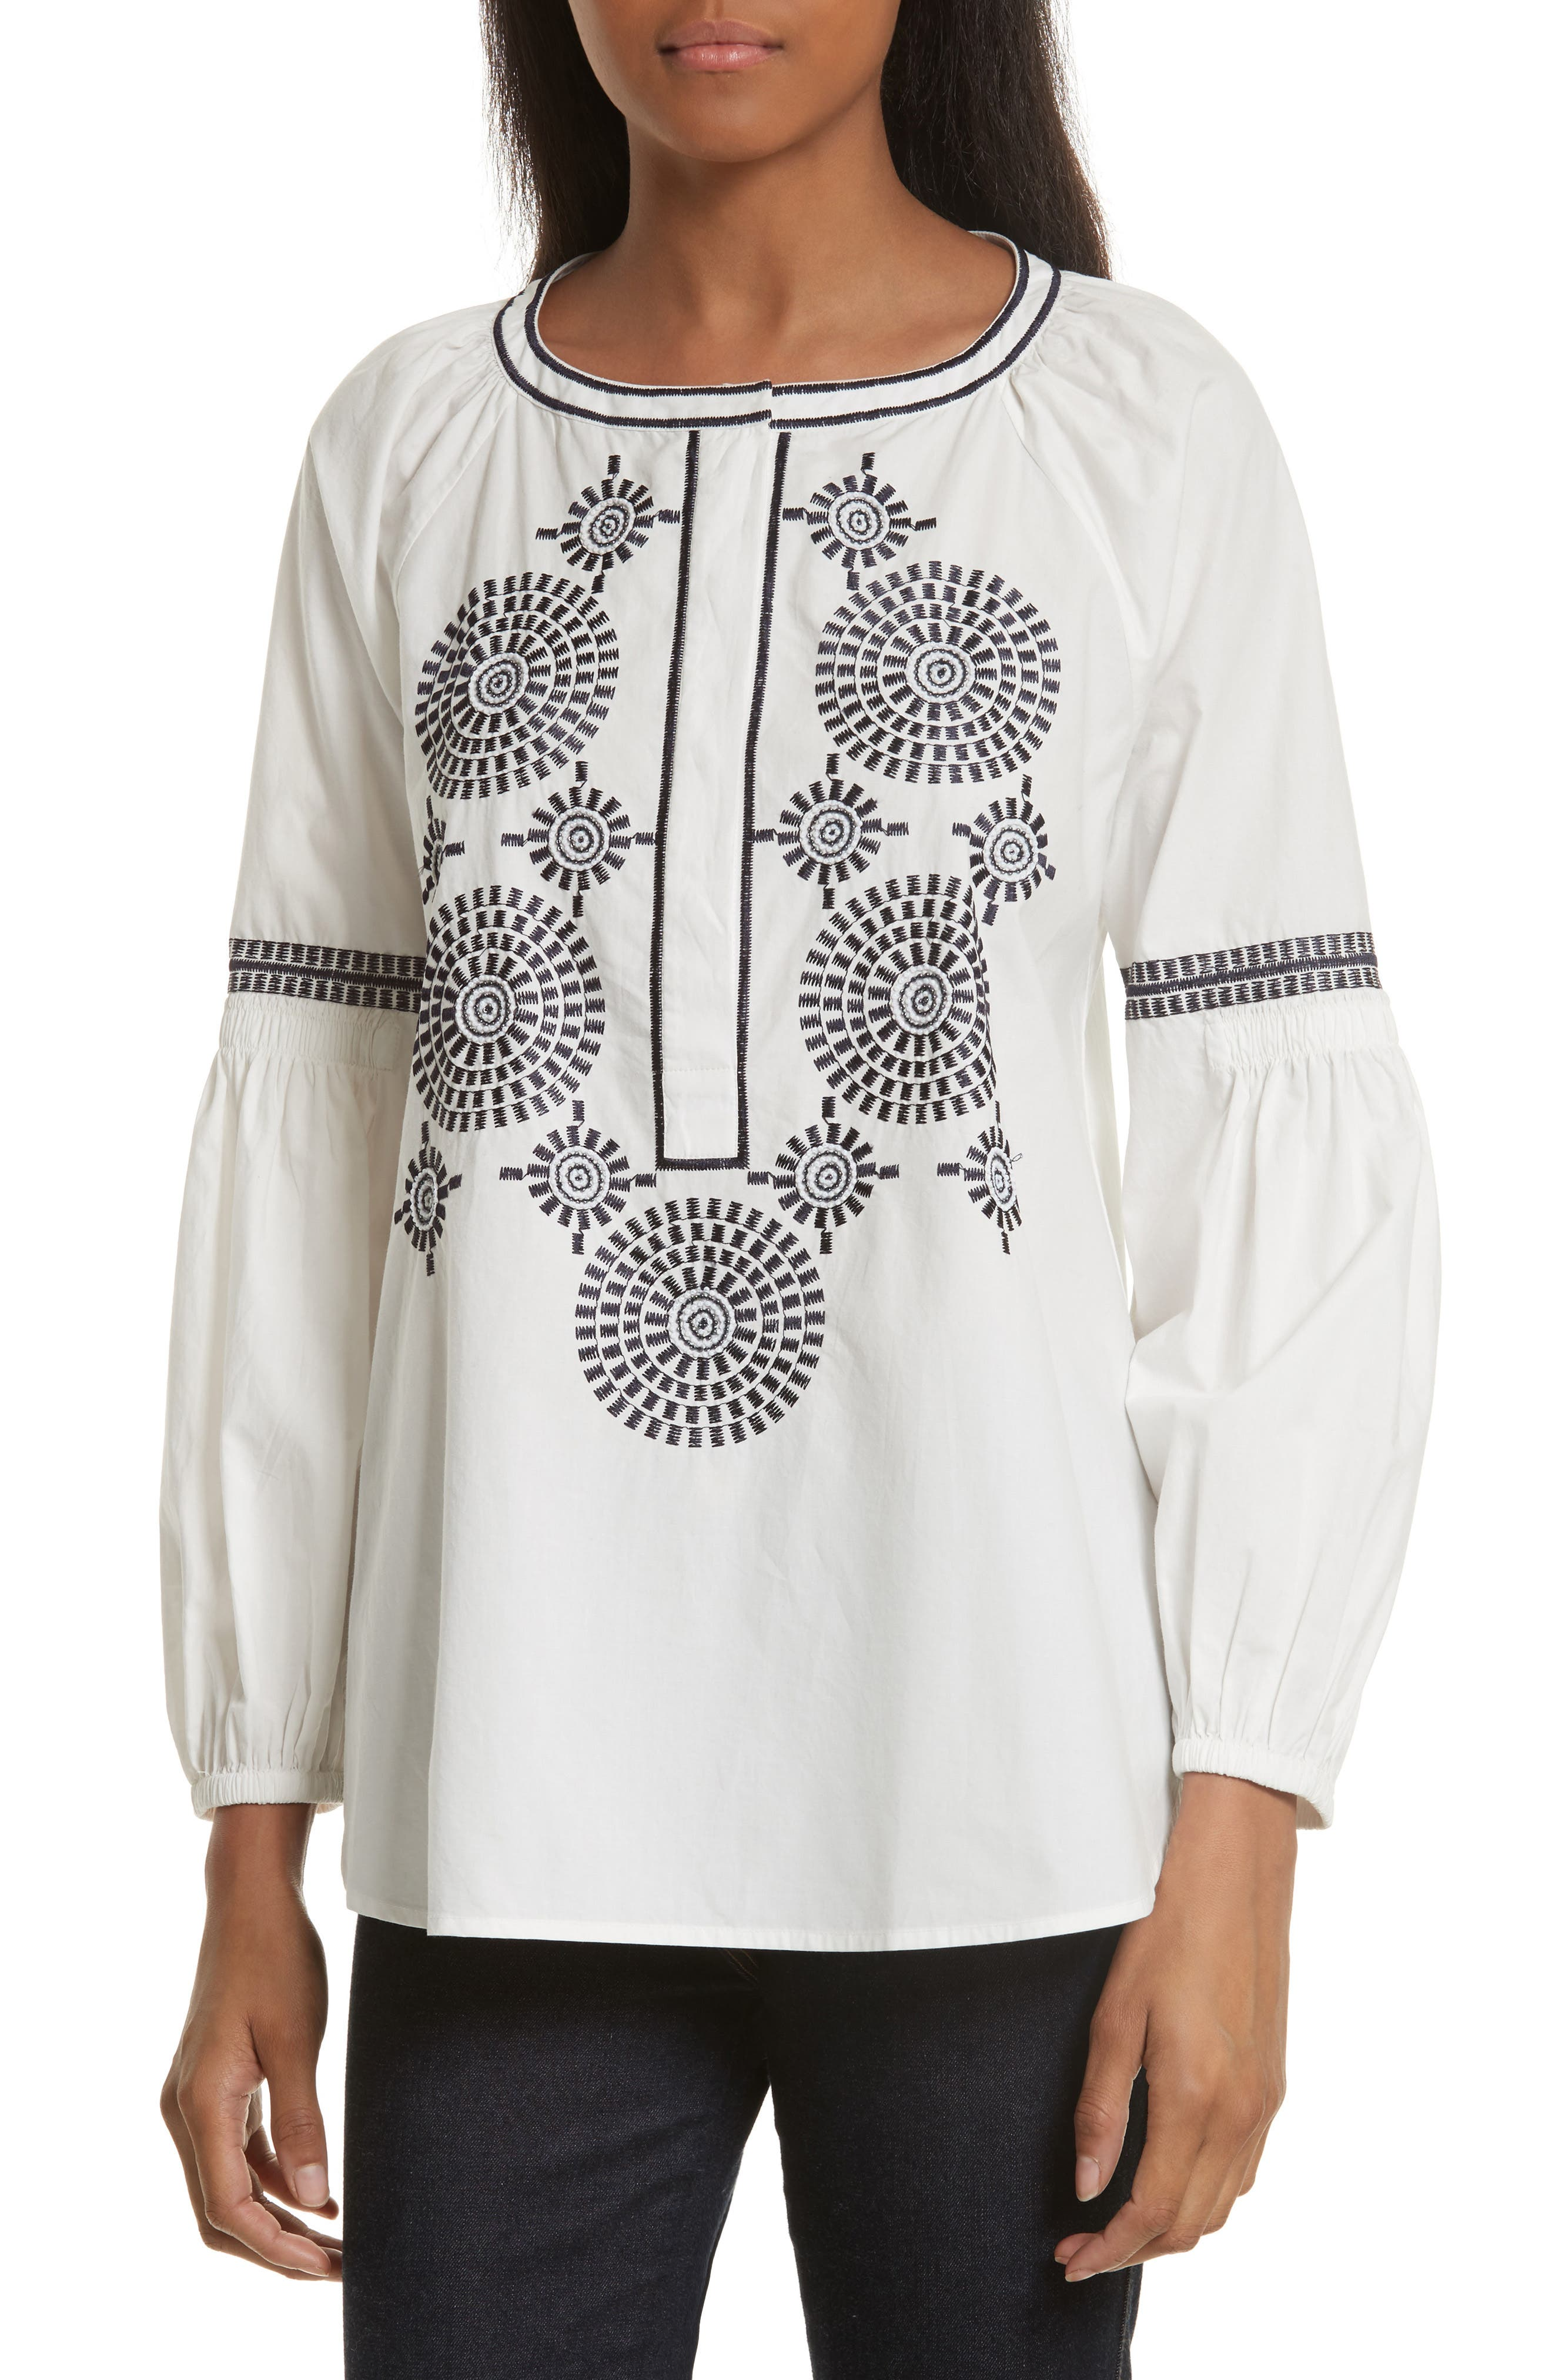 Alternate Image 1 Selected - Tory Burch Aubrey Embroidered Peasant Top